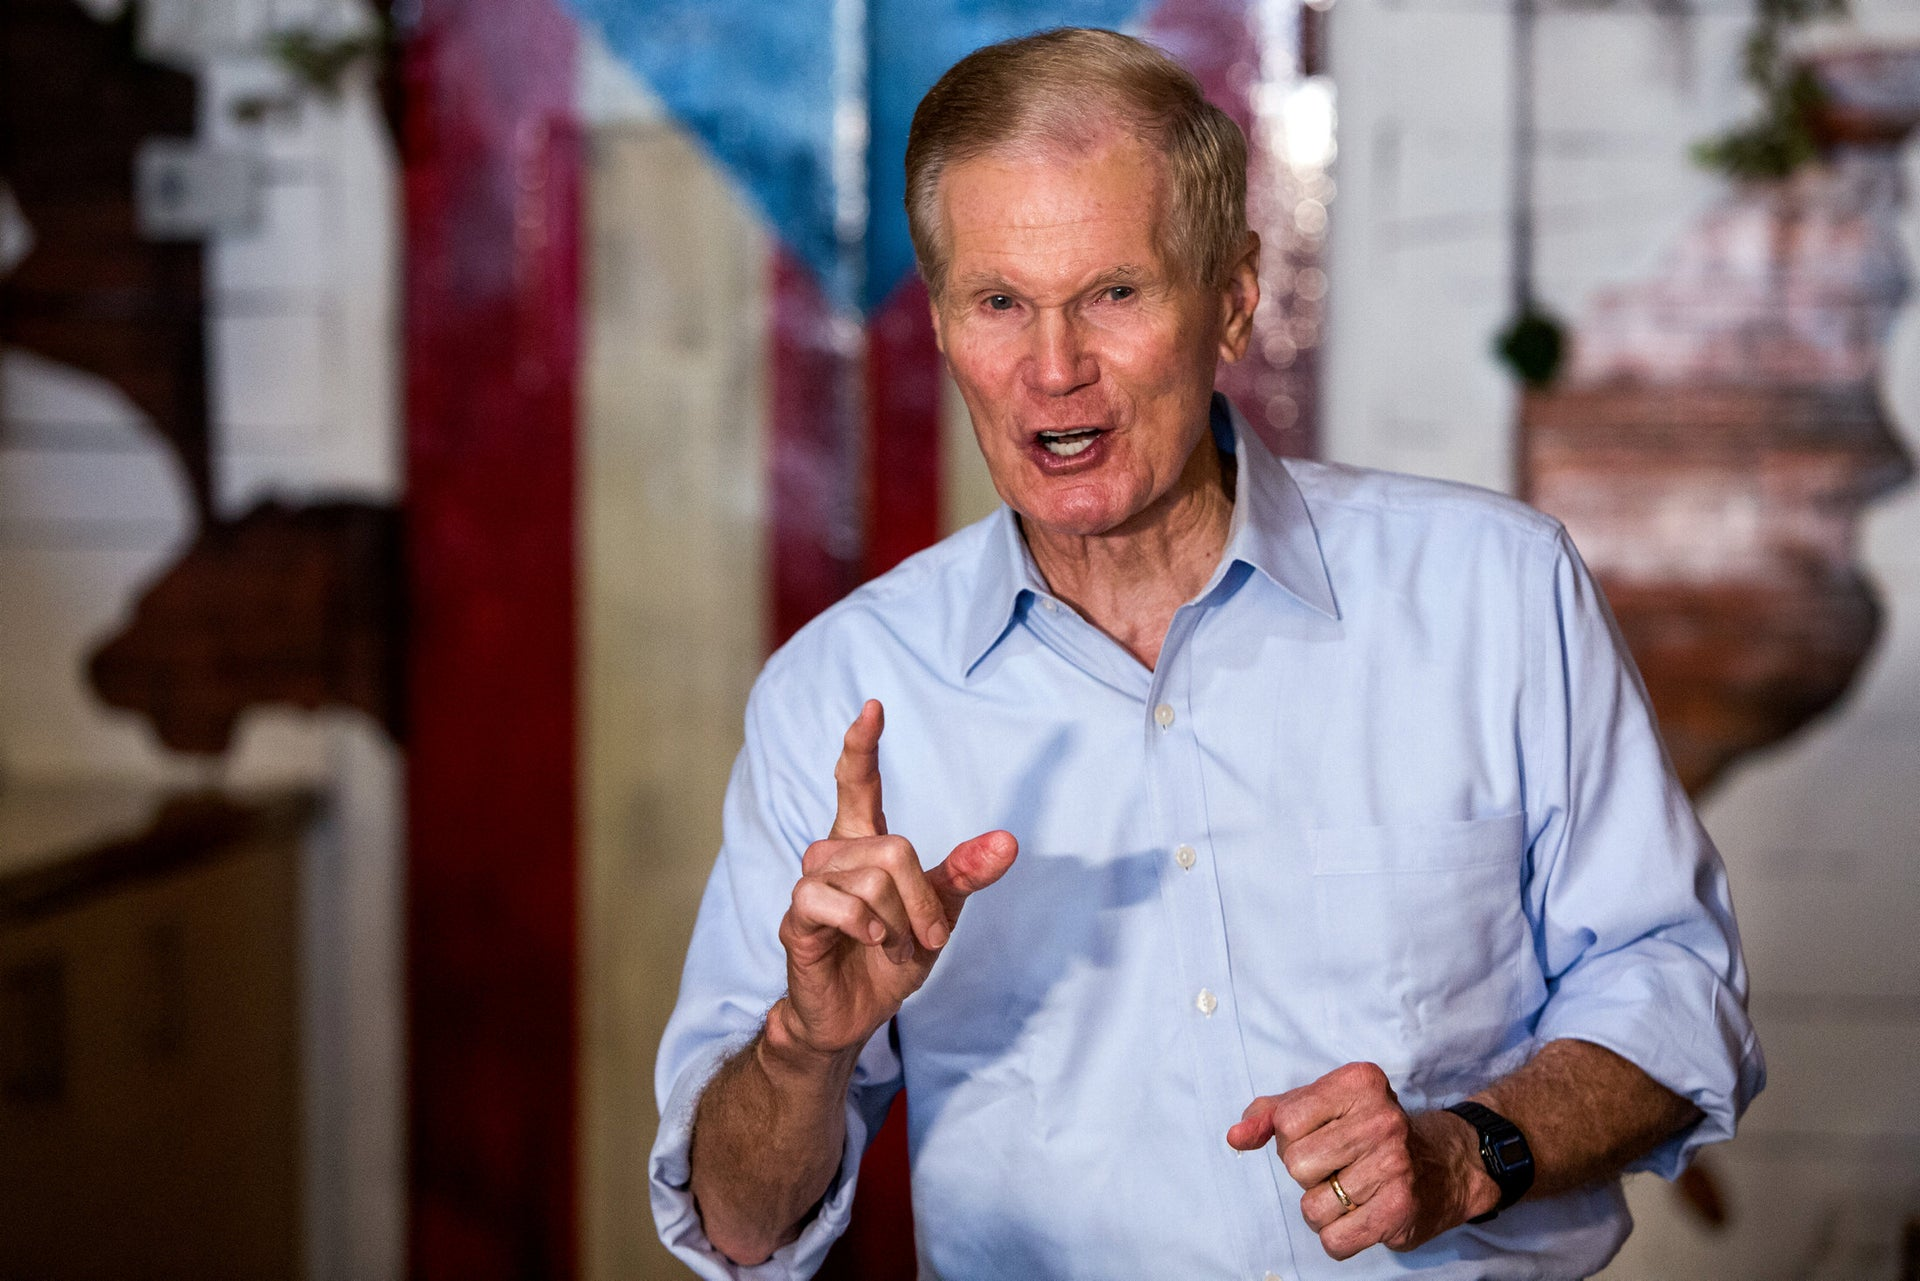 Sen. Bill Nelson (Dem) speaking during at an event in the Little Havana neighborhood of Miami, Florida, July 14, 2018.